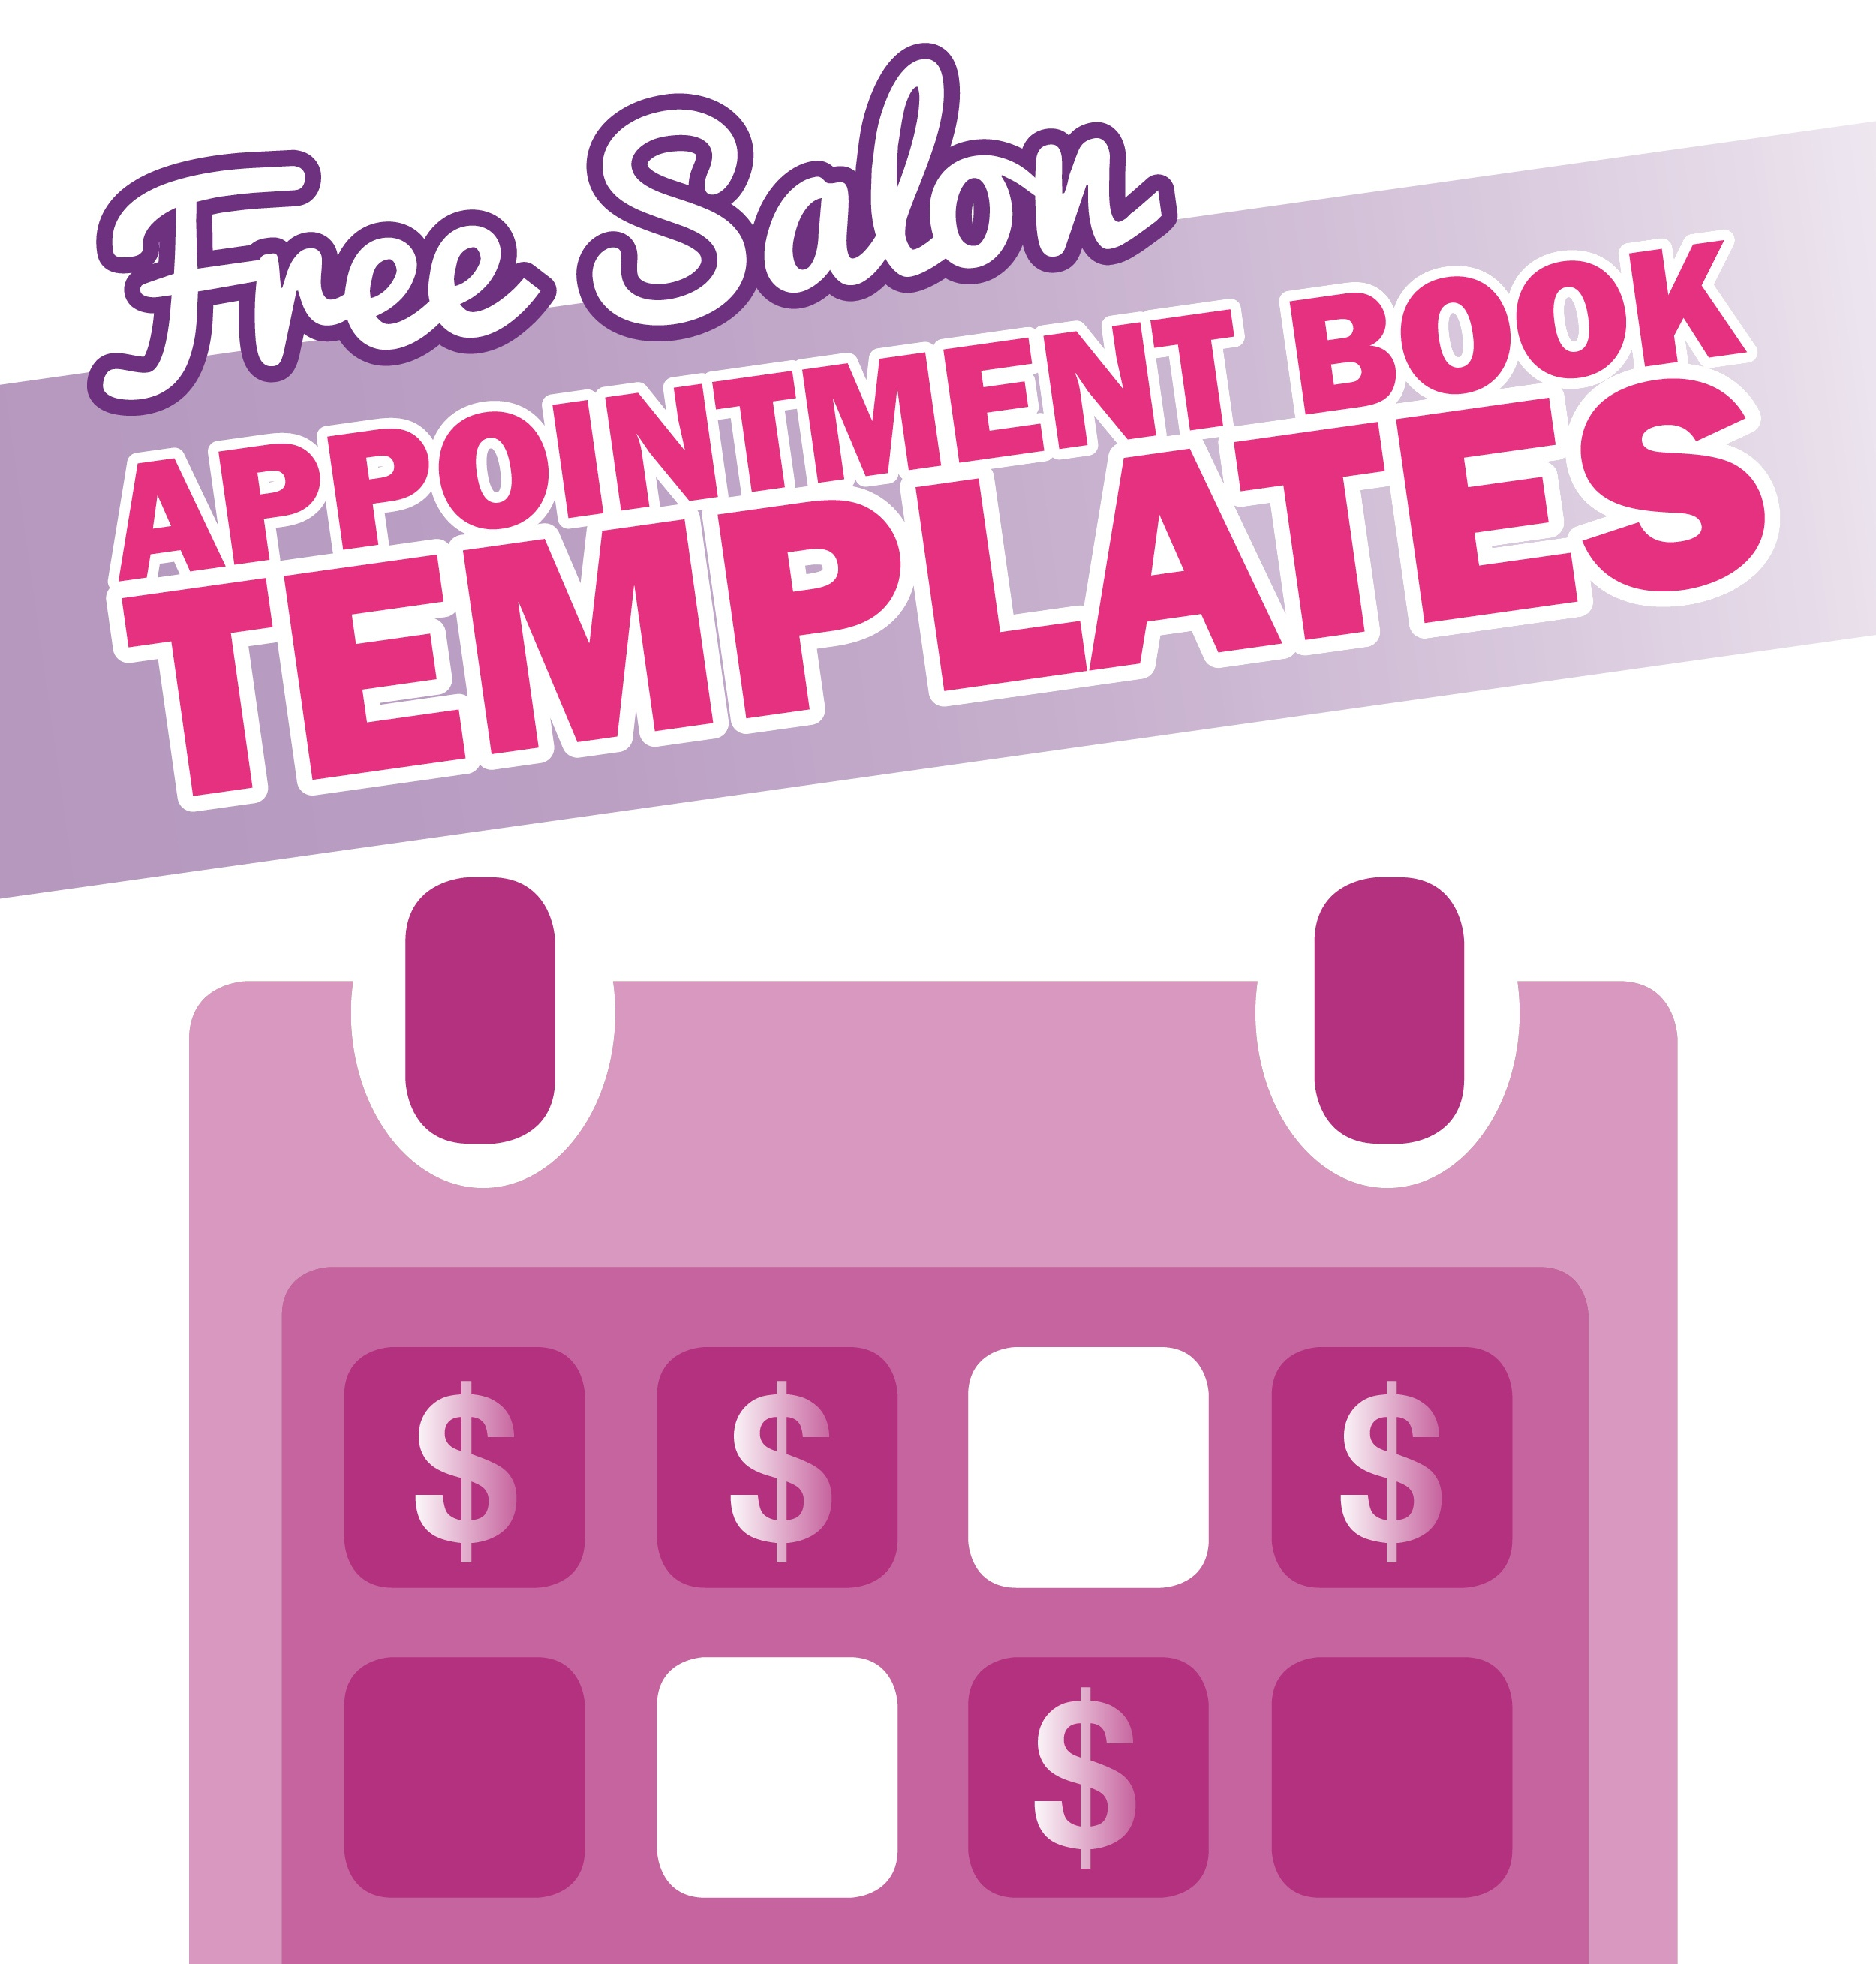 Free Salon Appointment Book Template - Worldwide Salon Marketing - Free Printable Salon Sign In Sheets